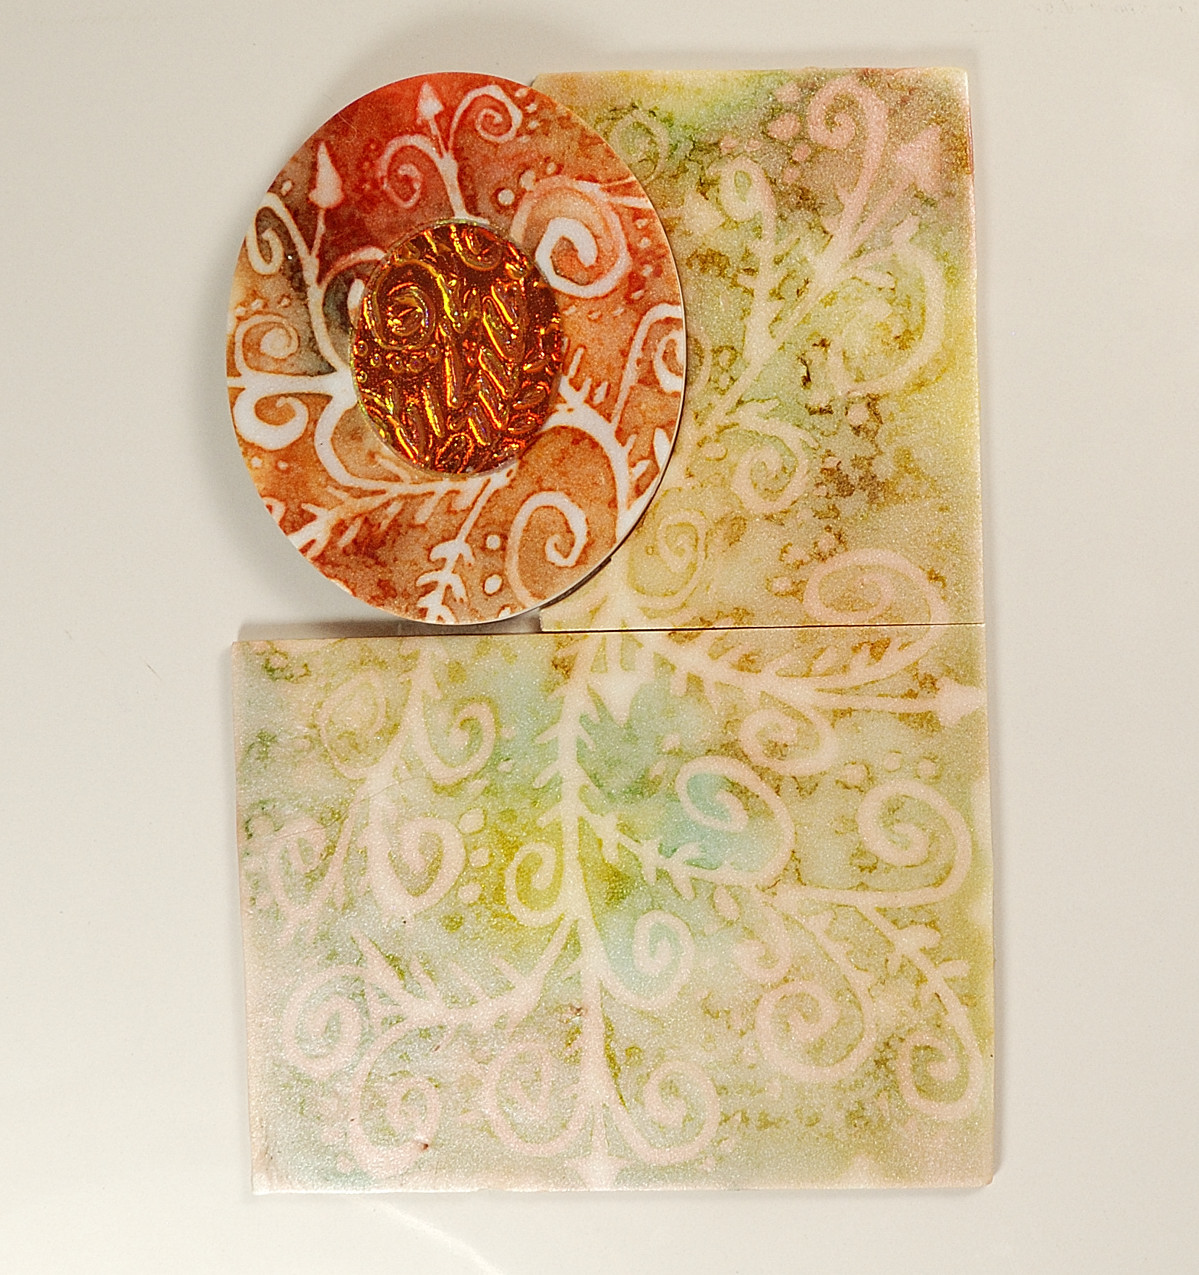 Coloring Translucent Polymer Clay With Alcohol Inks The